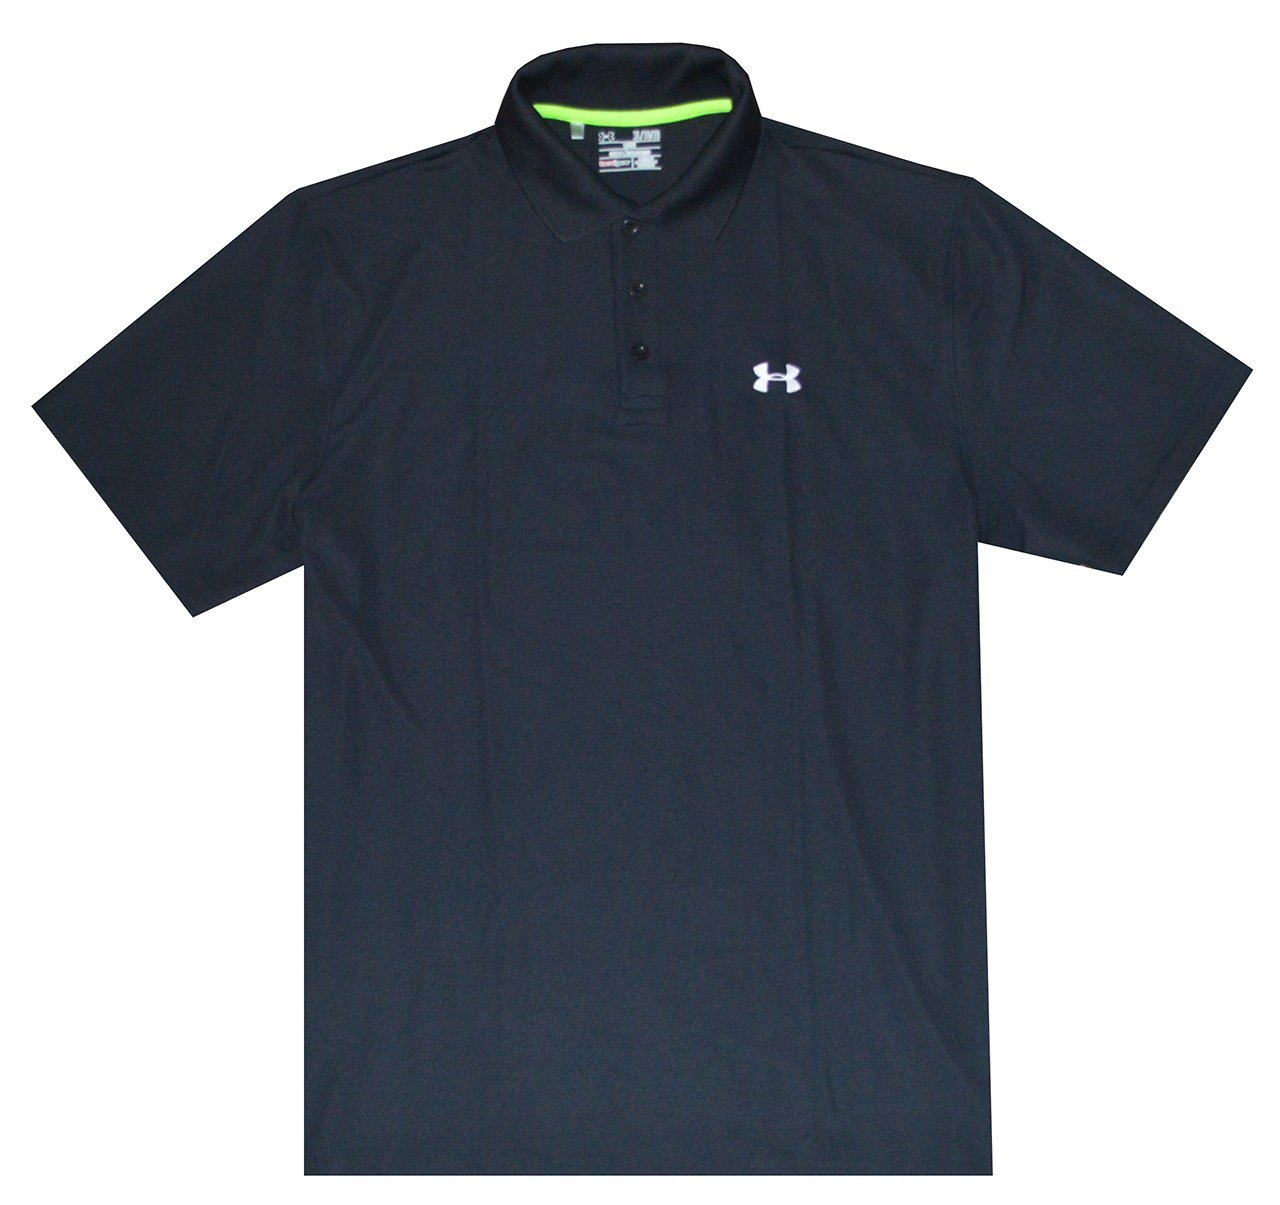 7cb822071 Amazon.com : Under Armour Men's Performance Polo : Clothing